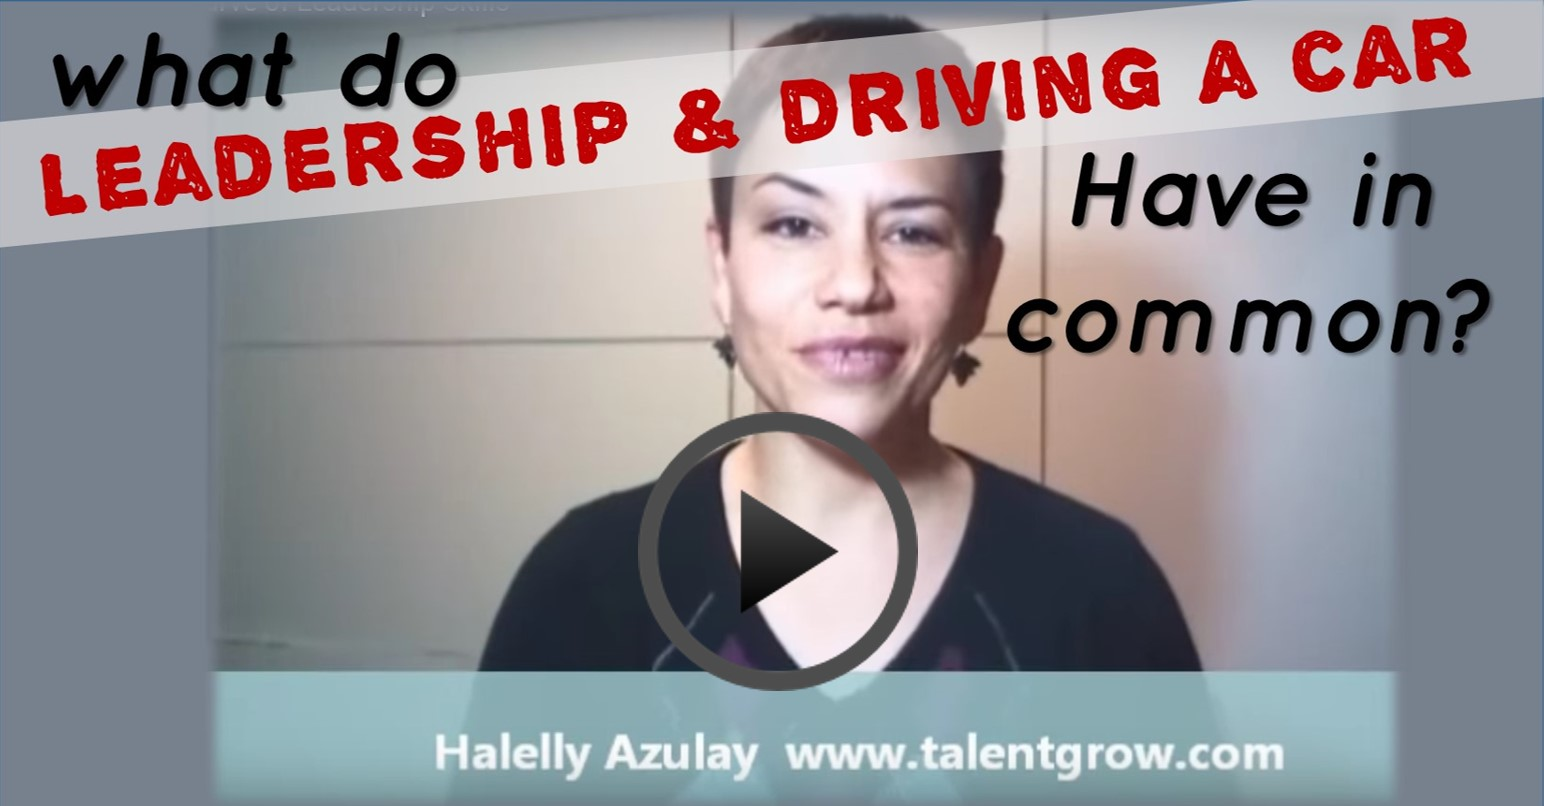 Halelly Azulay TalentGrow vlog what do leadership and driving a car have in common the learning curve of leadership